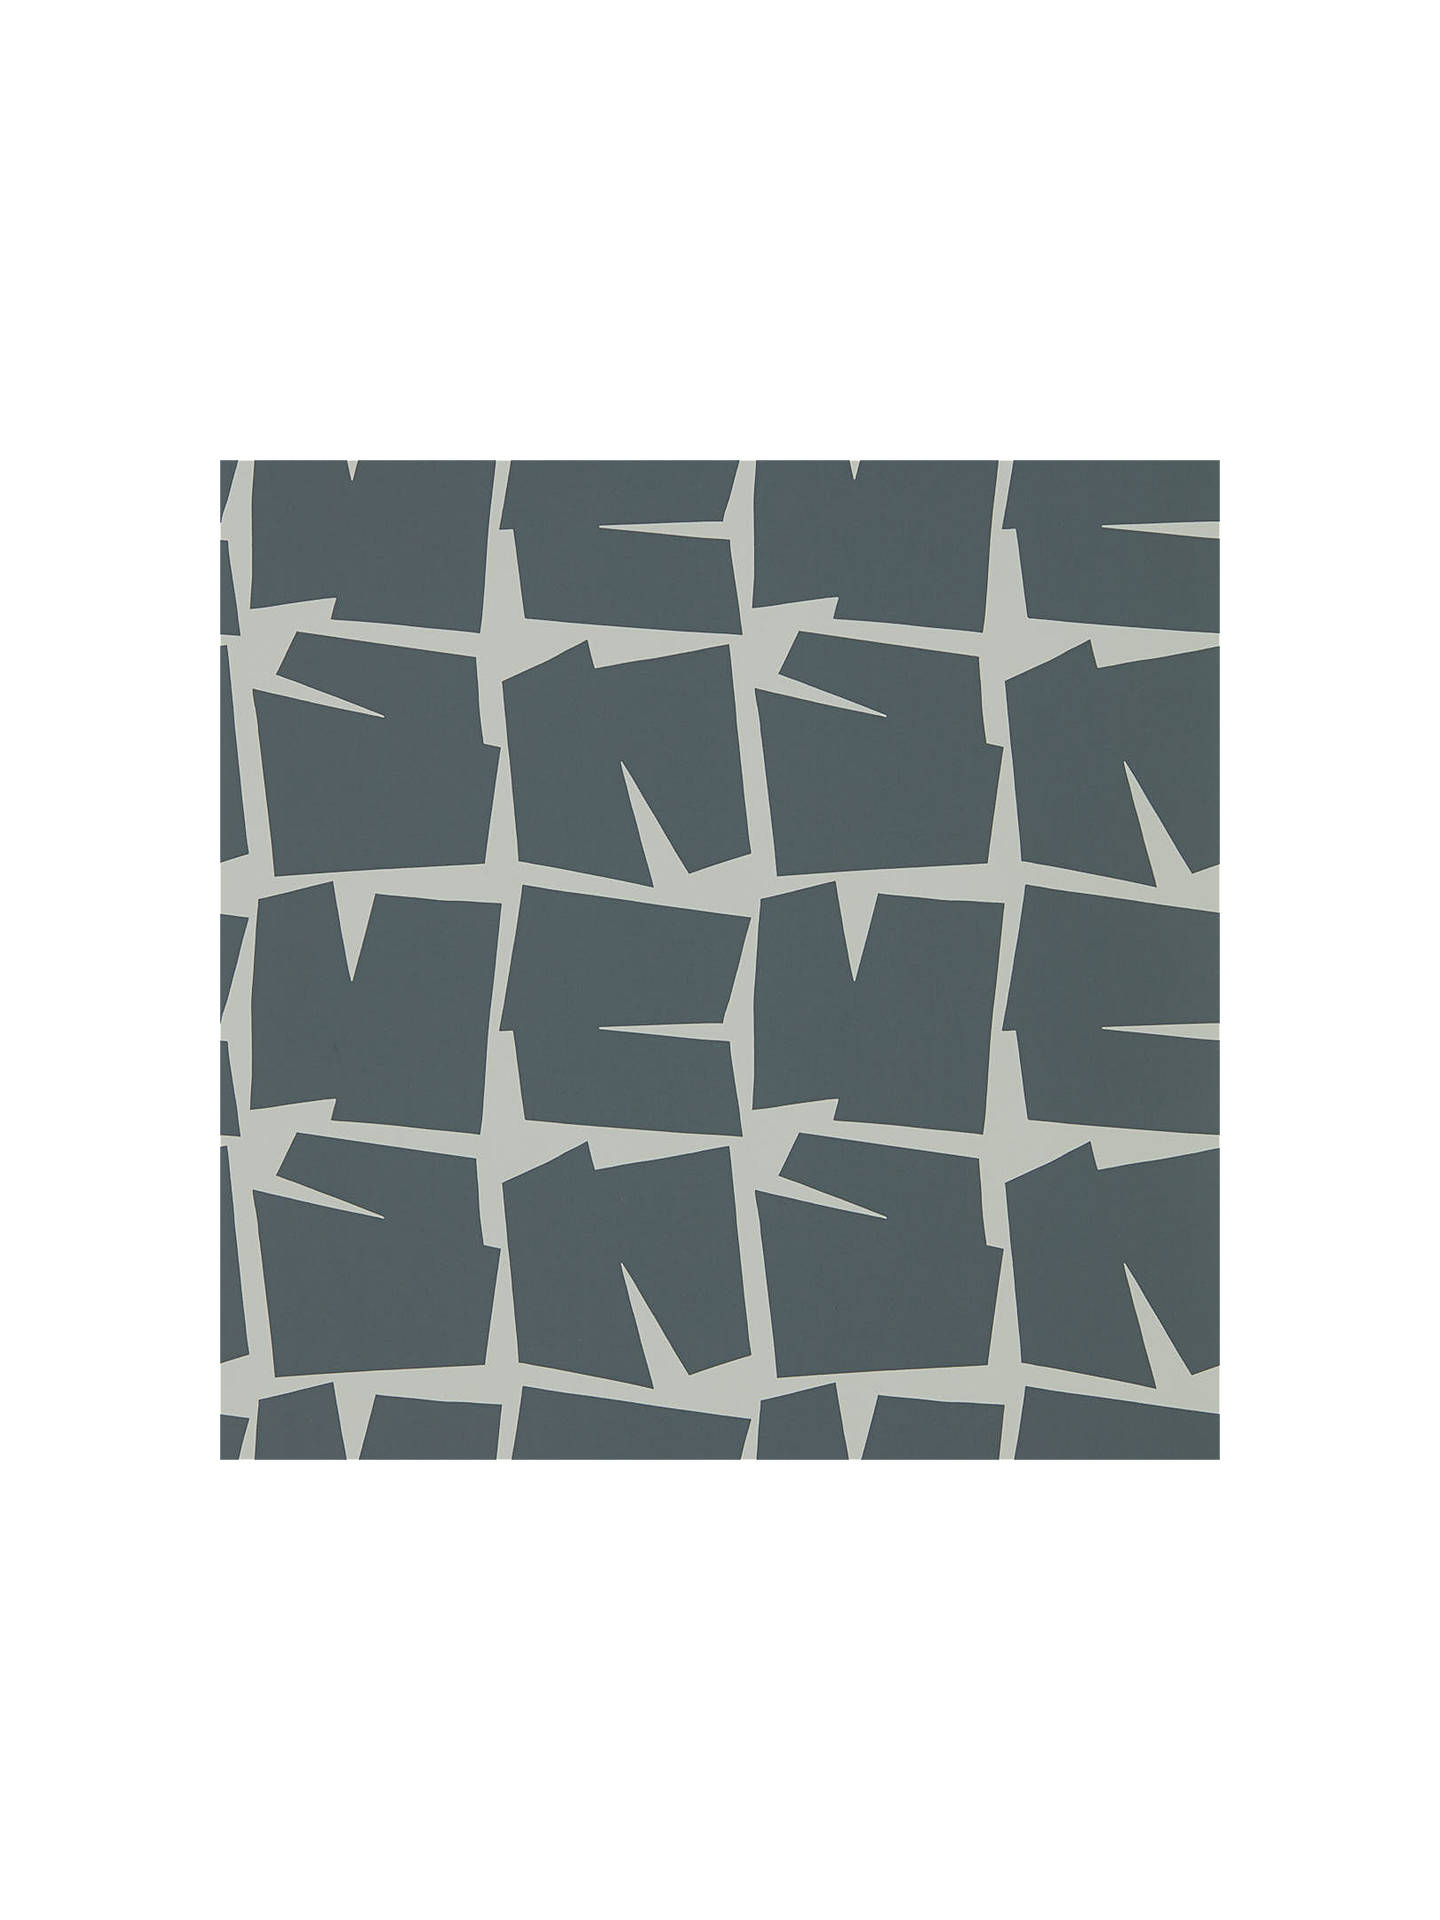 BuyScion Moqui Wallpaper, 111804 Online at johnlewis.com